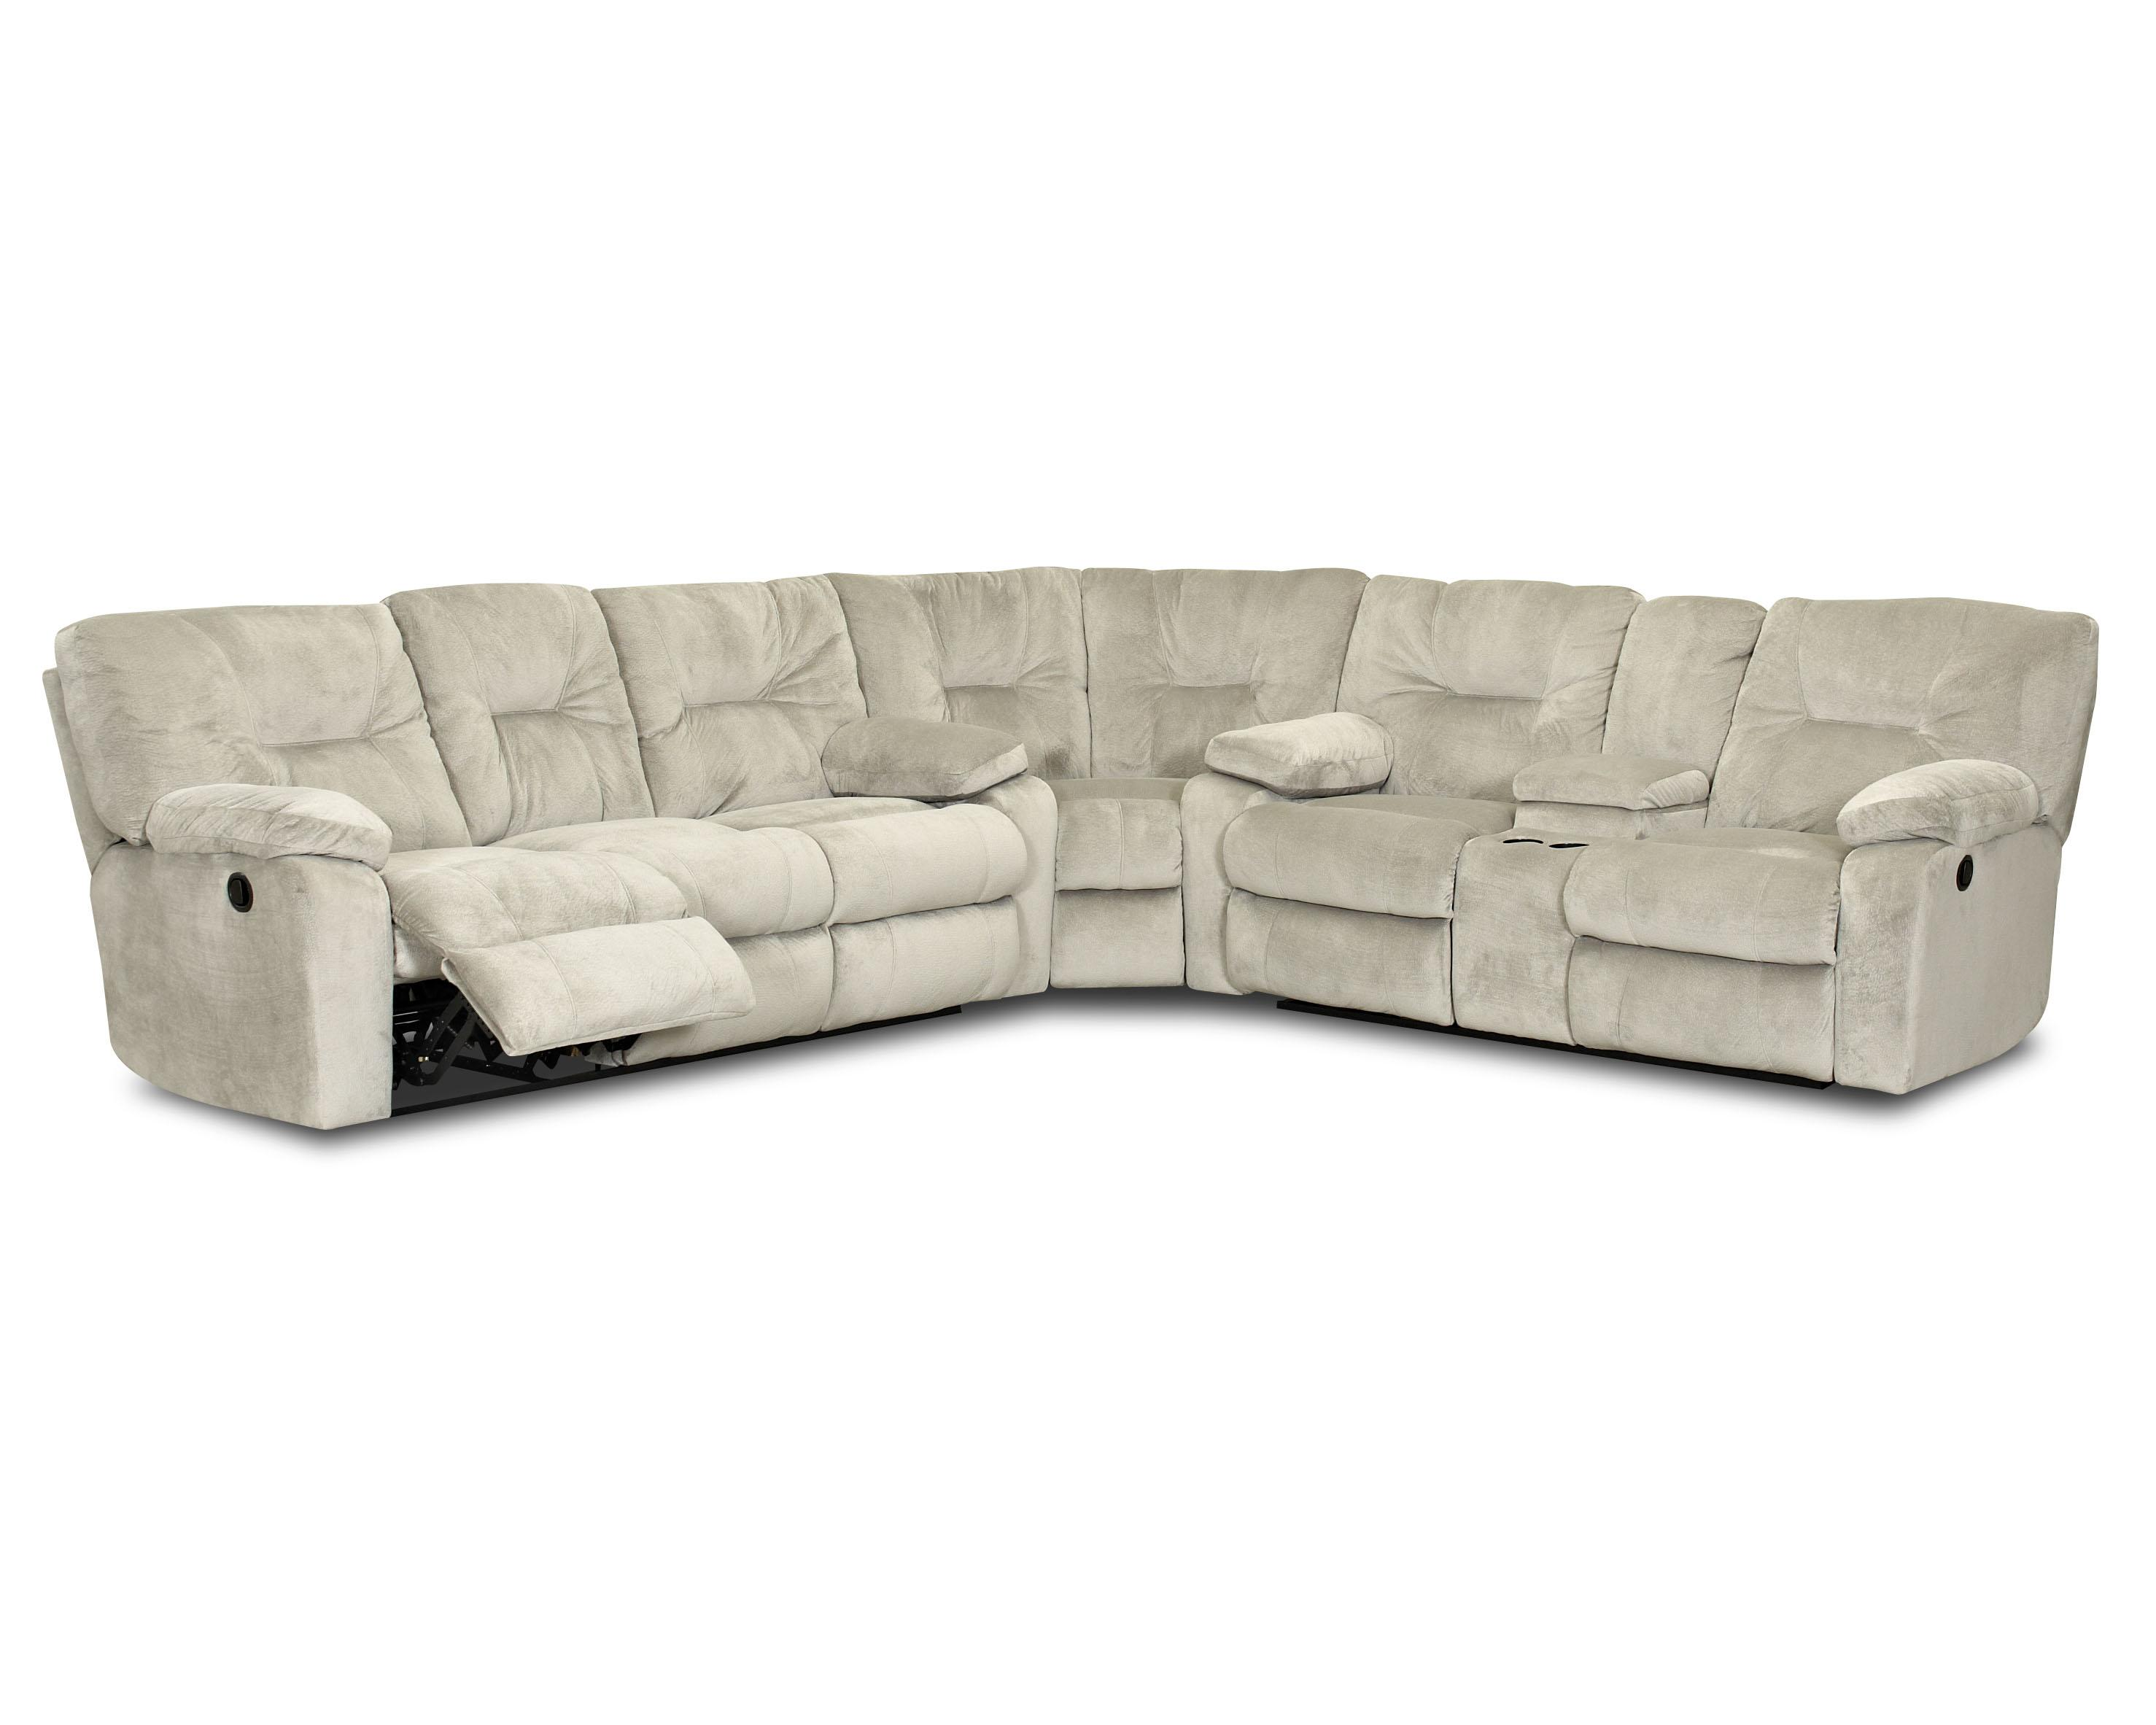 Casual Reclining Sectional with Pillow Top Arms and Storage Console